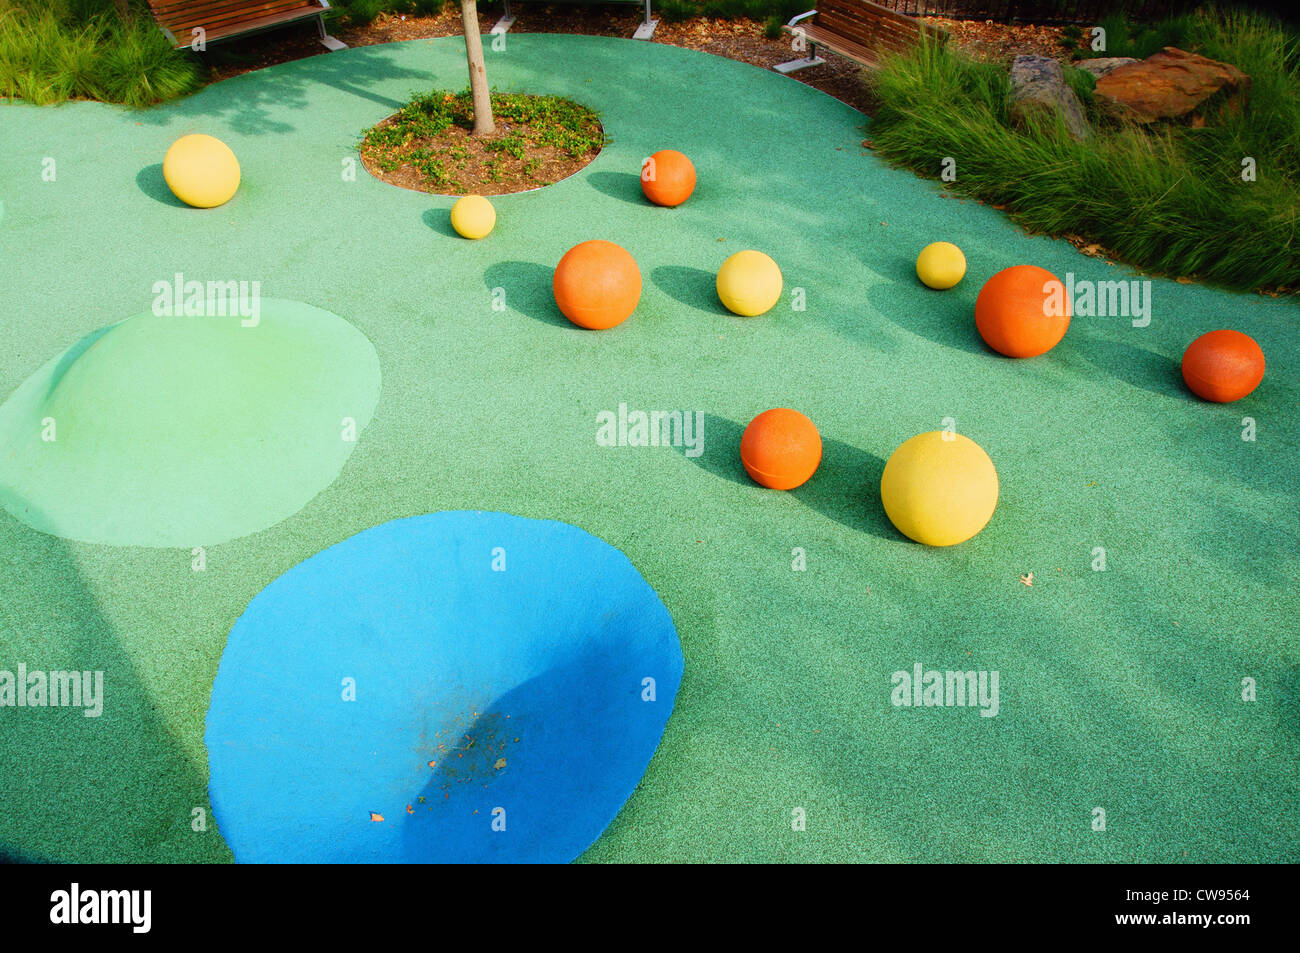 objects graphic design background child kid childrens play park myriad botanical gardens oklahoma city ok reno - Stock Image